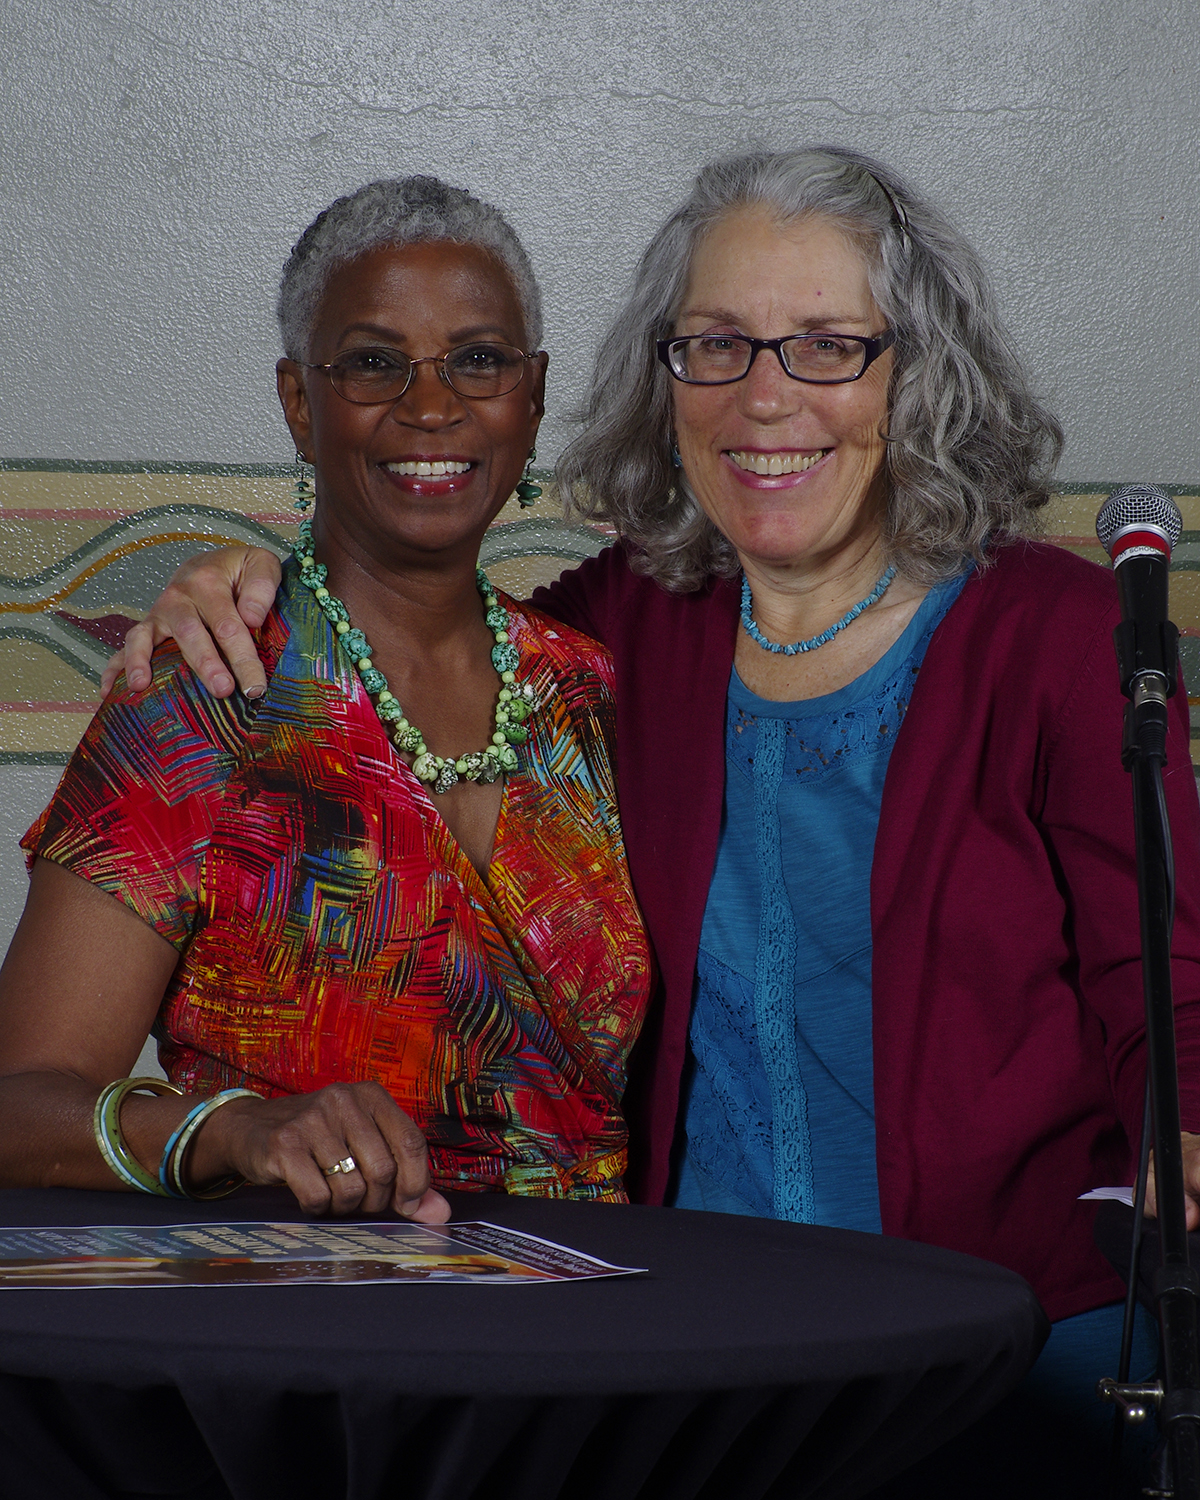 Donna Maxey and I at Race Talks, photo by Jane Keating